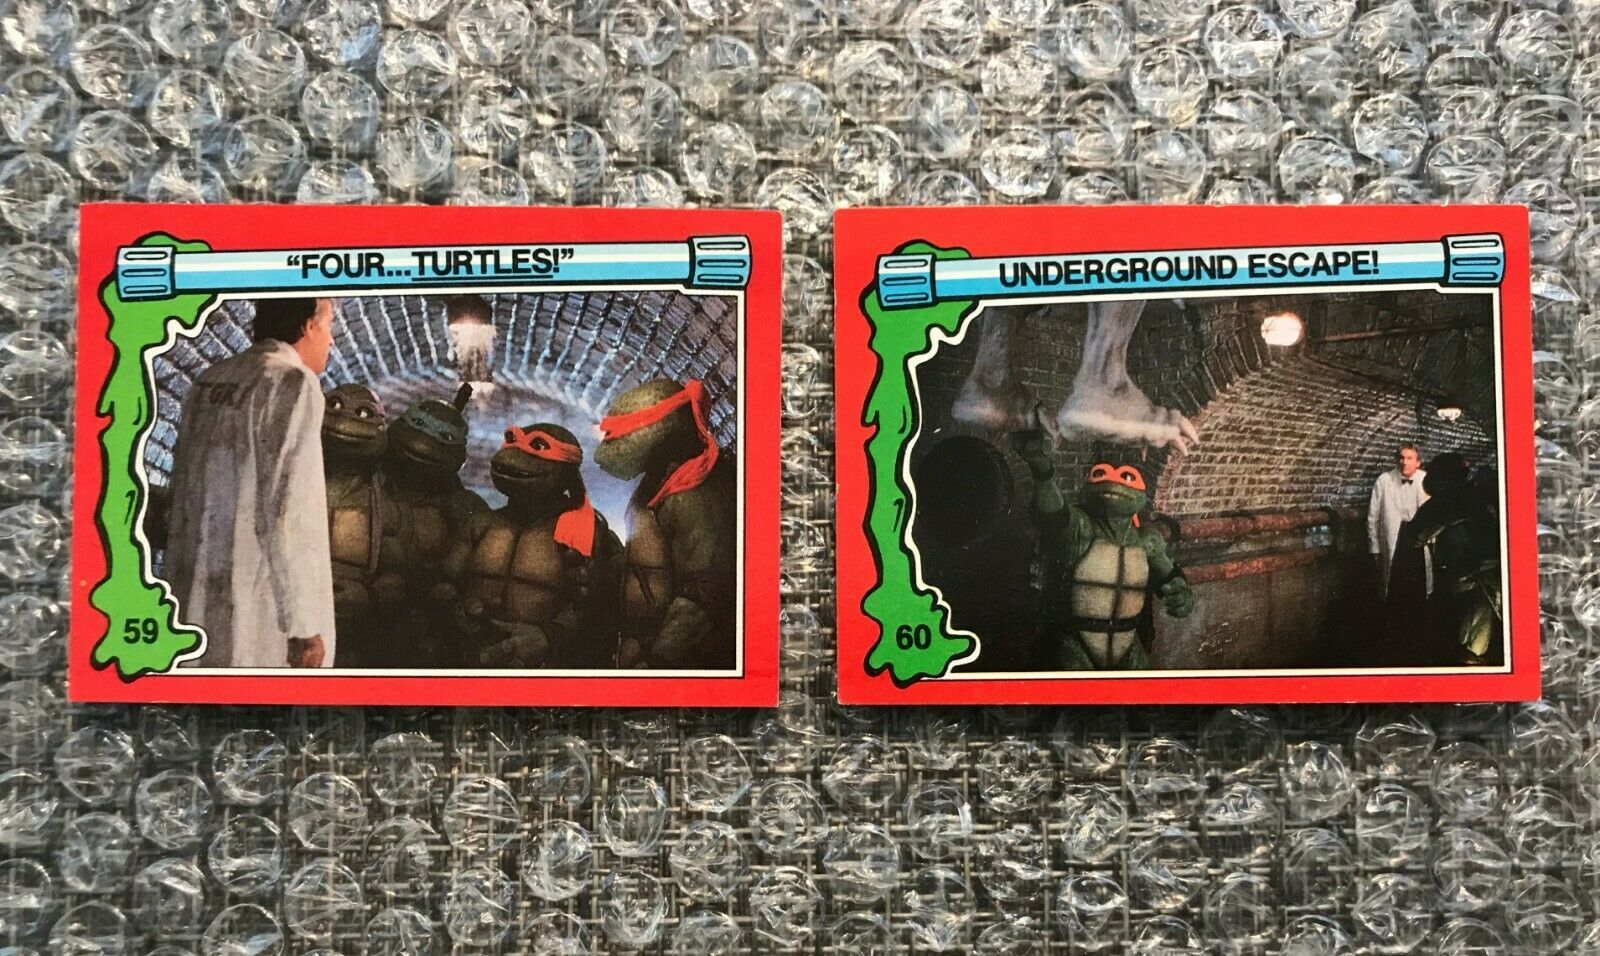 1991 Topps Teenage Mutant Ninja Turtles TMNT II Movie Cards Lot: #59 & #60 - $3.92